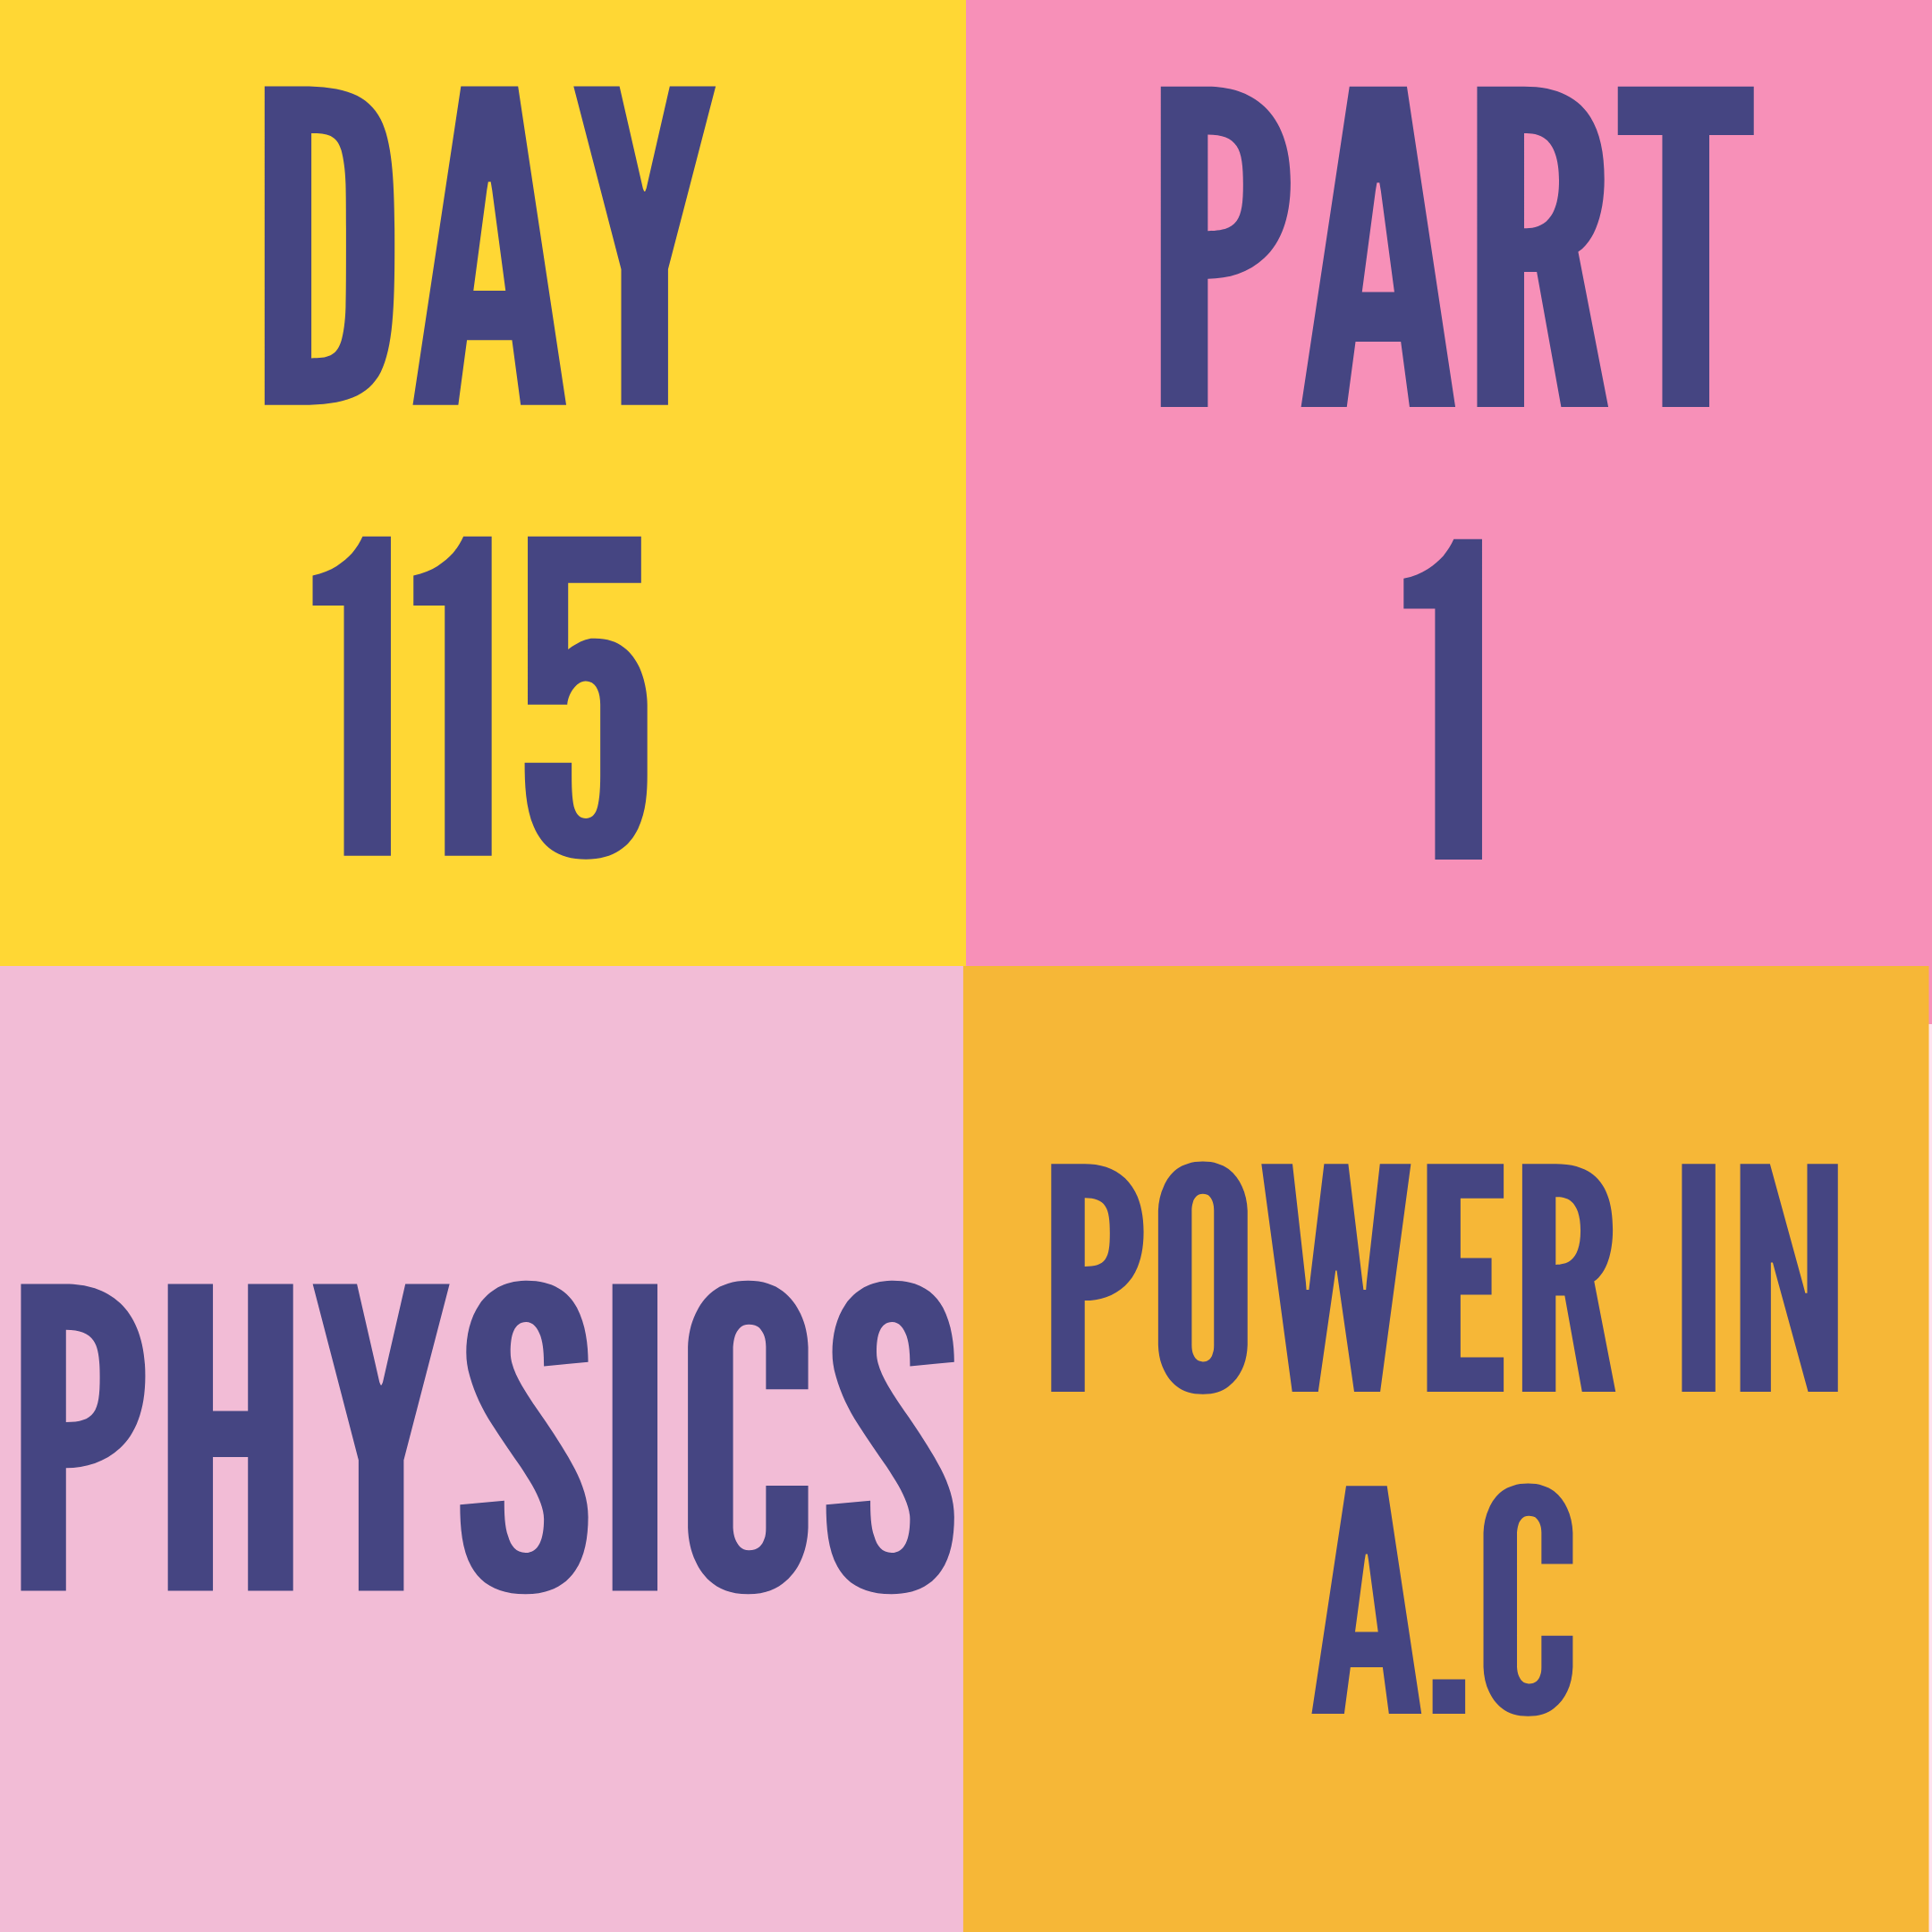 DAY-115 PART-1 POWER IN A.C